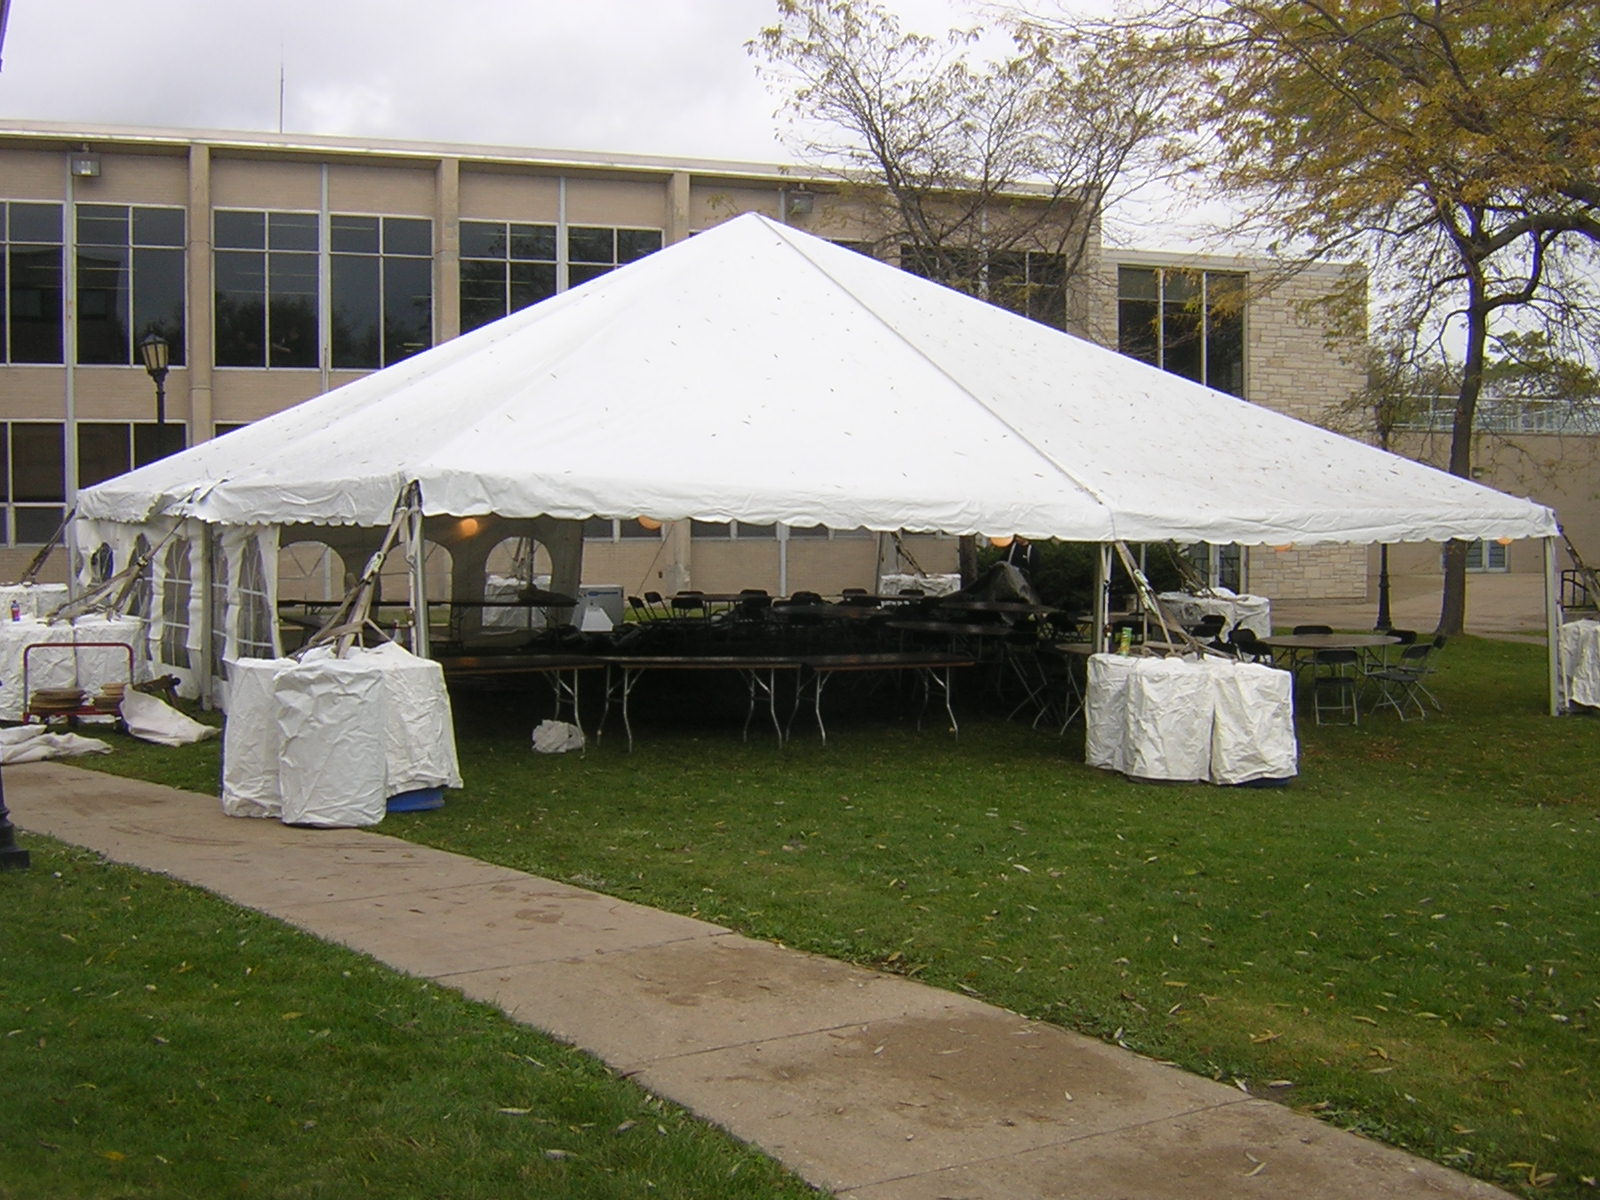 40u0027 Wide frame tent tent with no center pole white canopy & Tenting | General Rental